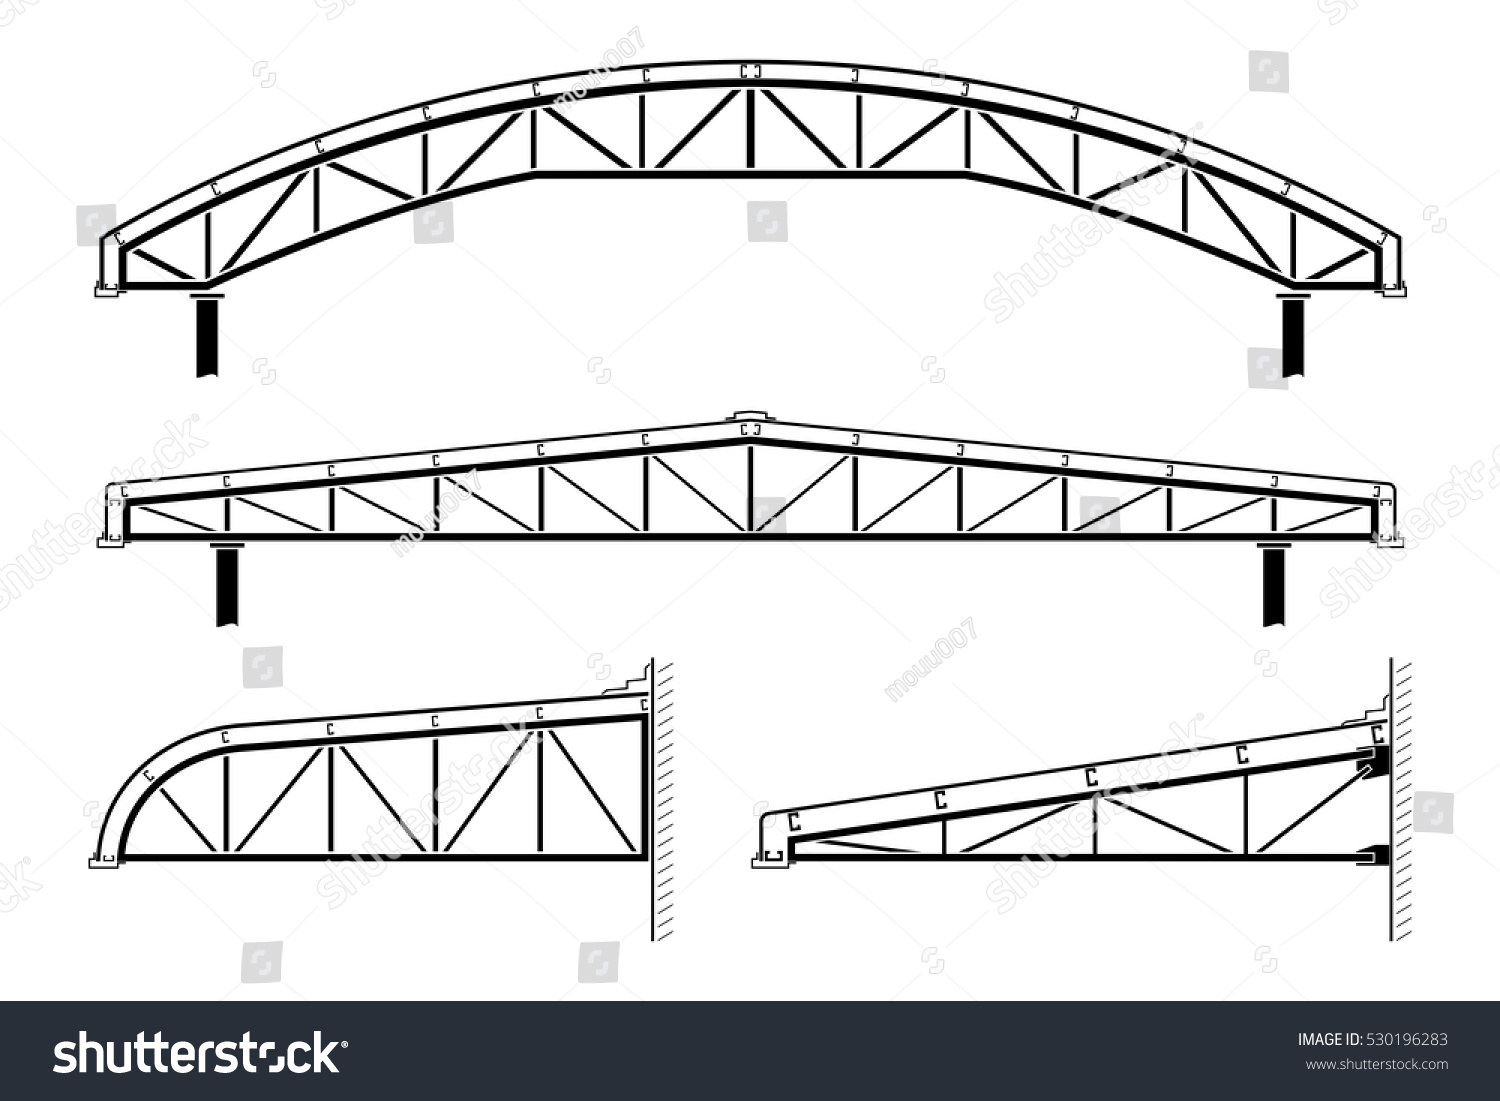 Royalty Free Roofing Building Silhouette Of Framing 530196283 Roof Truss Diagram Framingroof Collection Vector Illustration